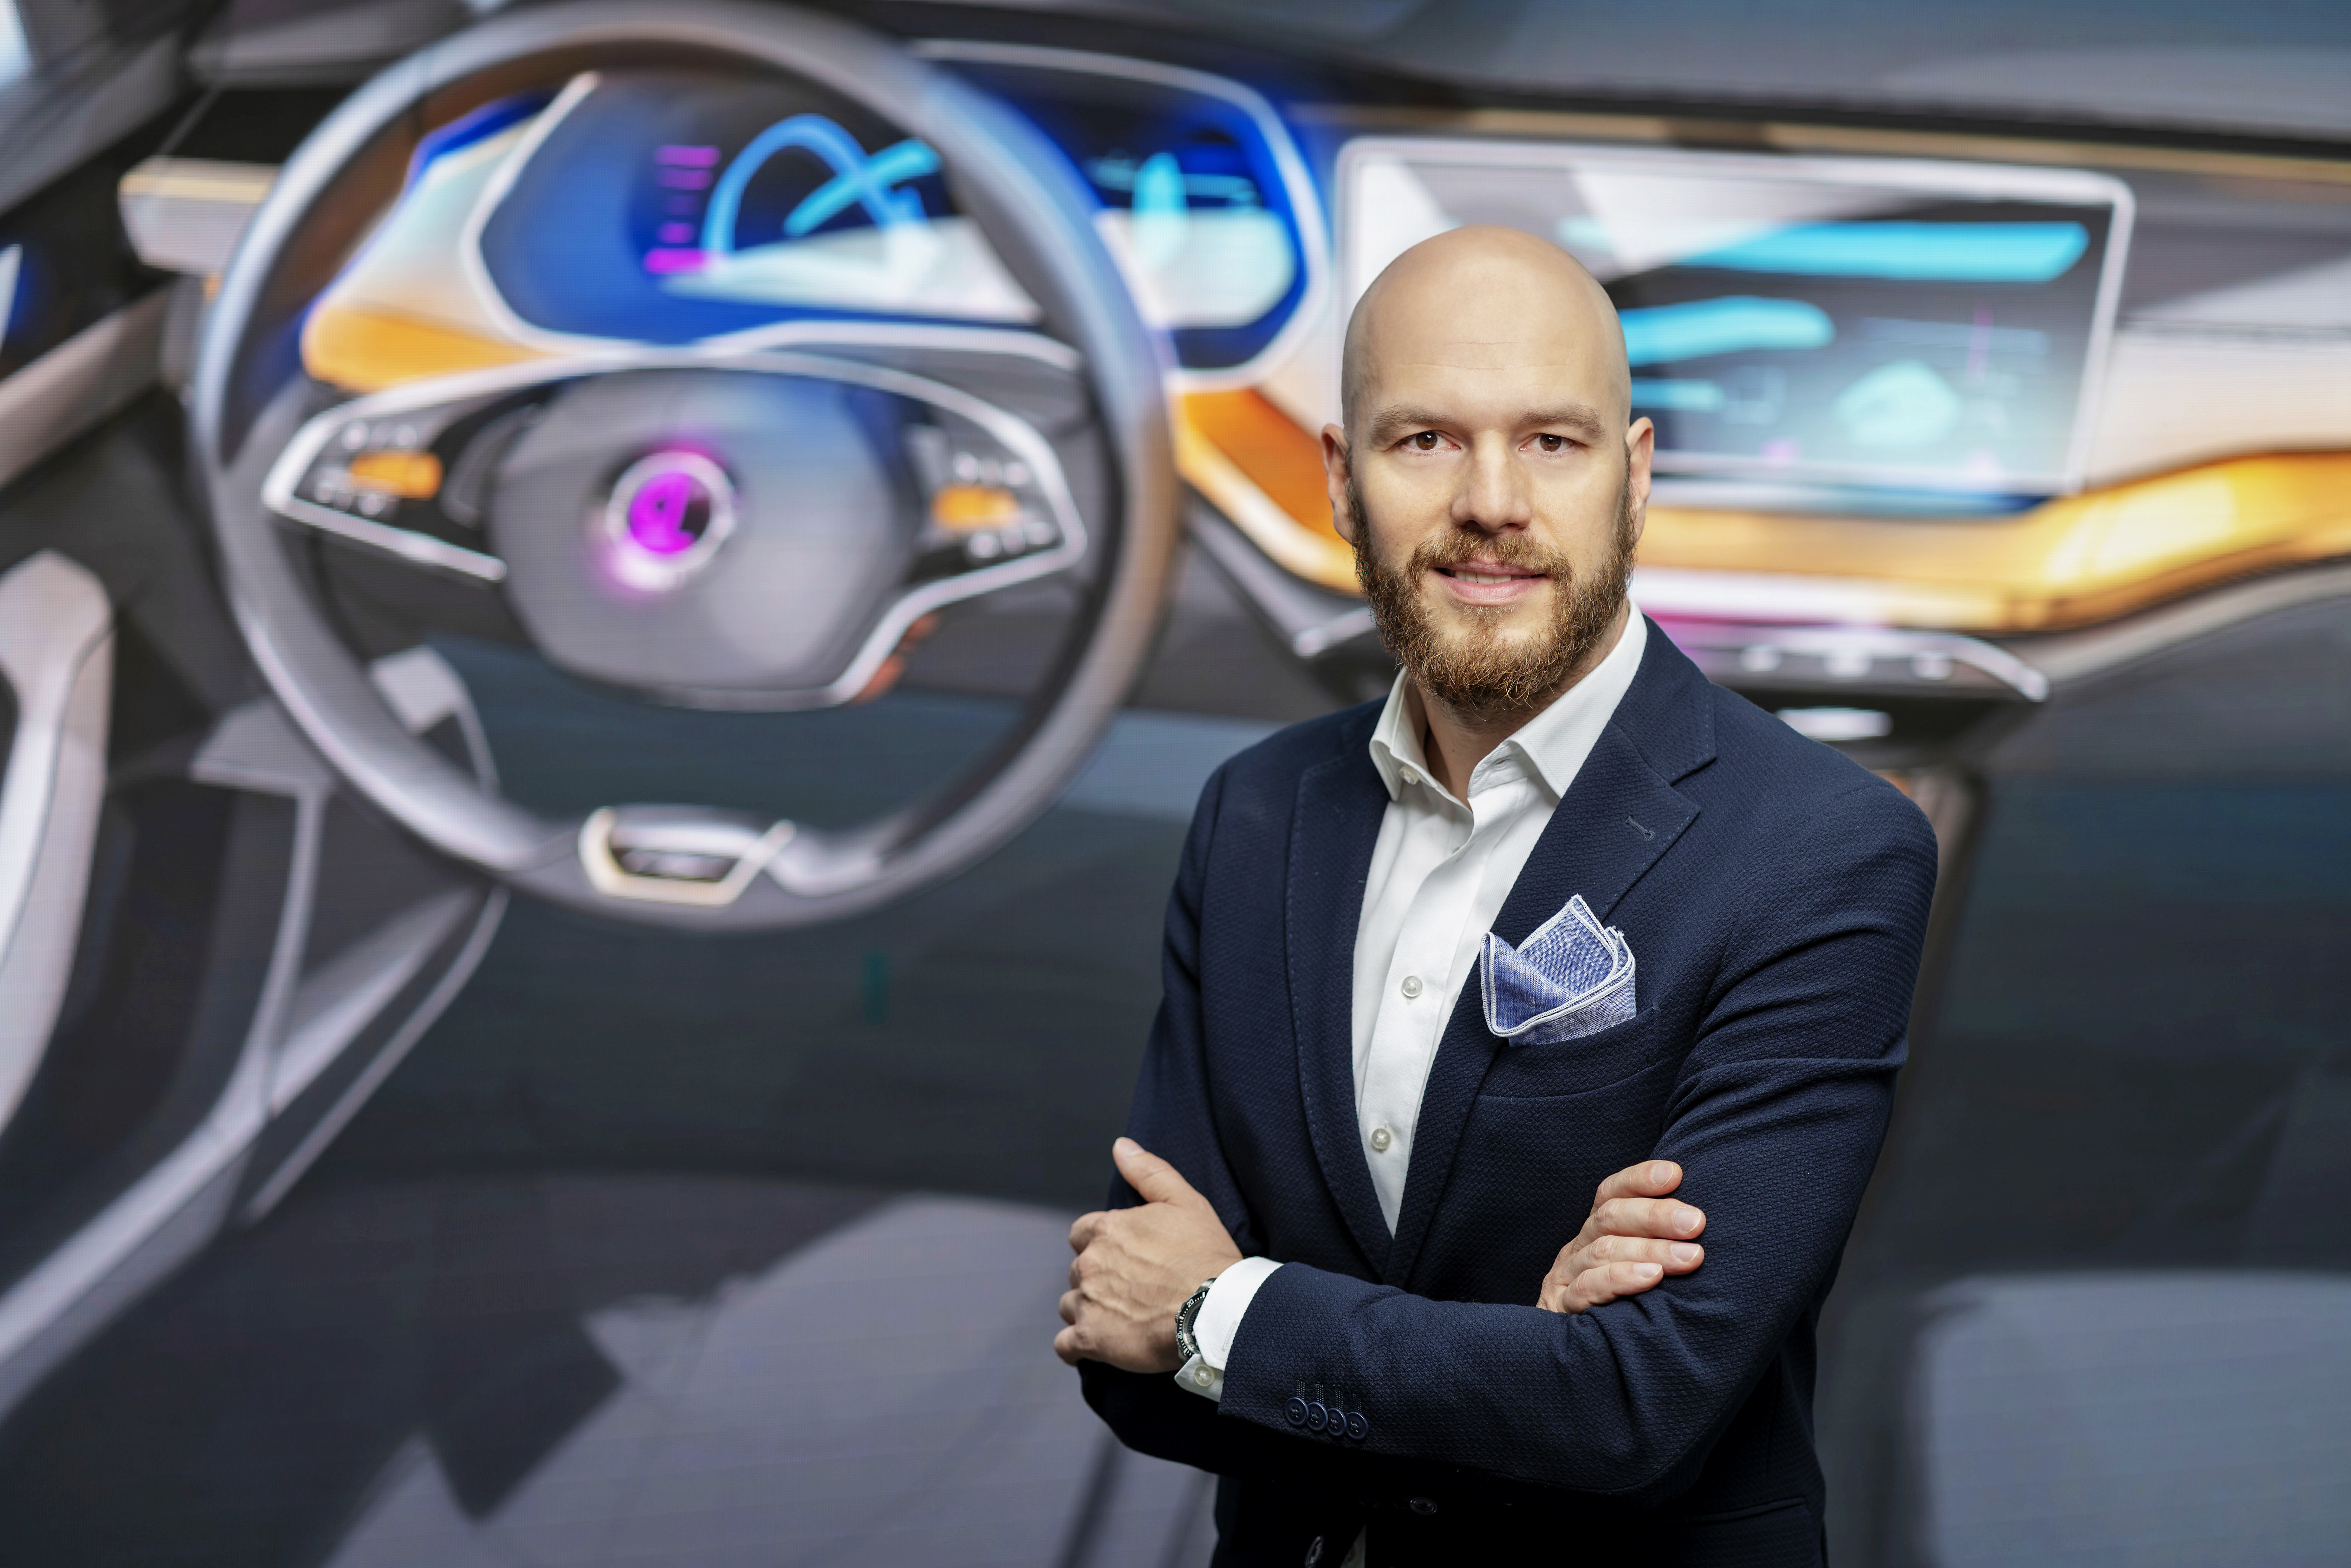 SKODA AUTO appoints Peter Olah as Head of Interior Design - Image 1